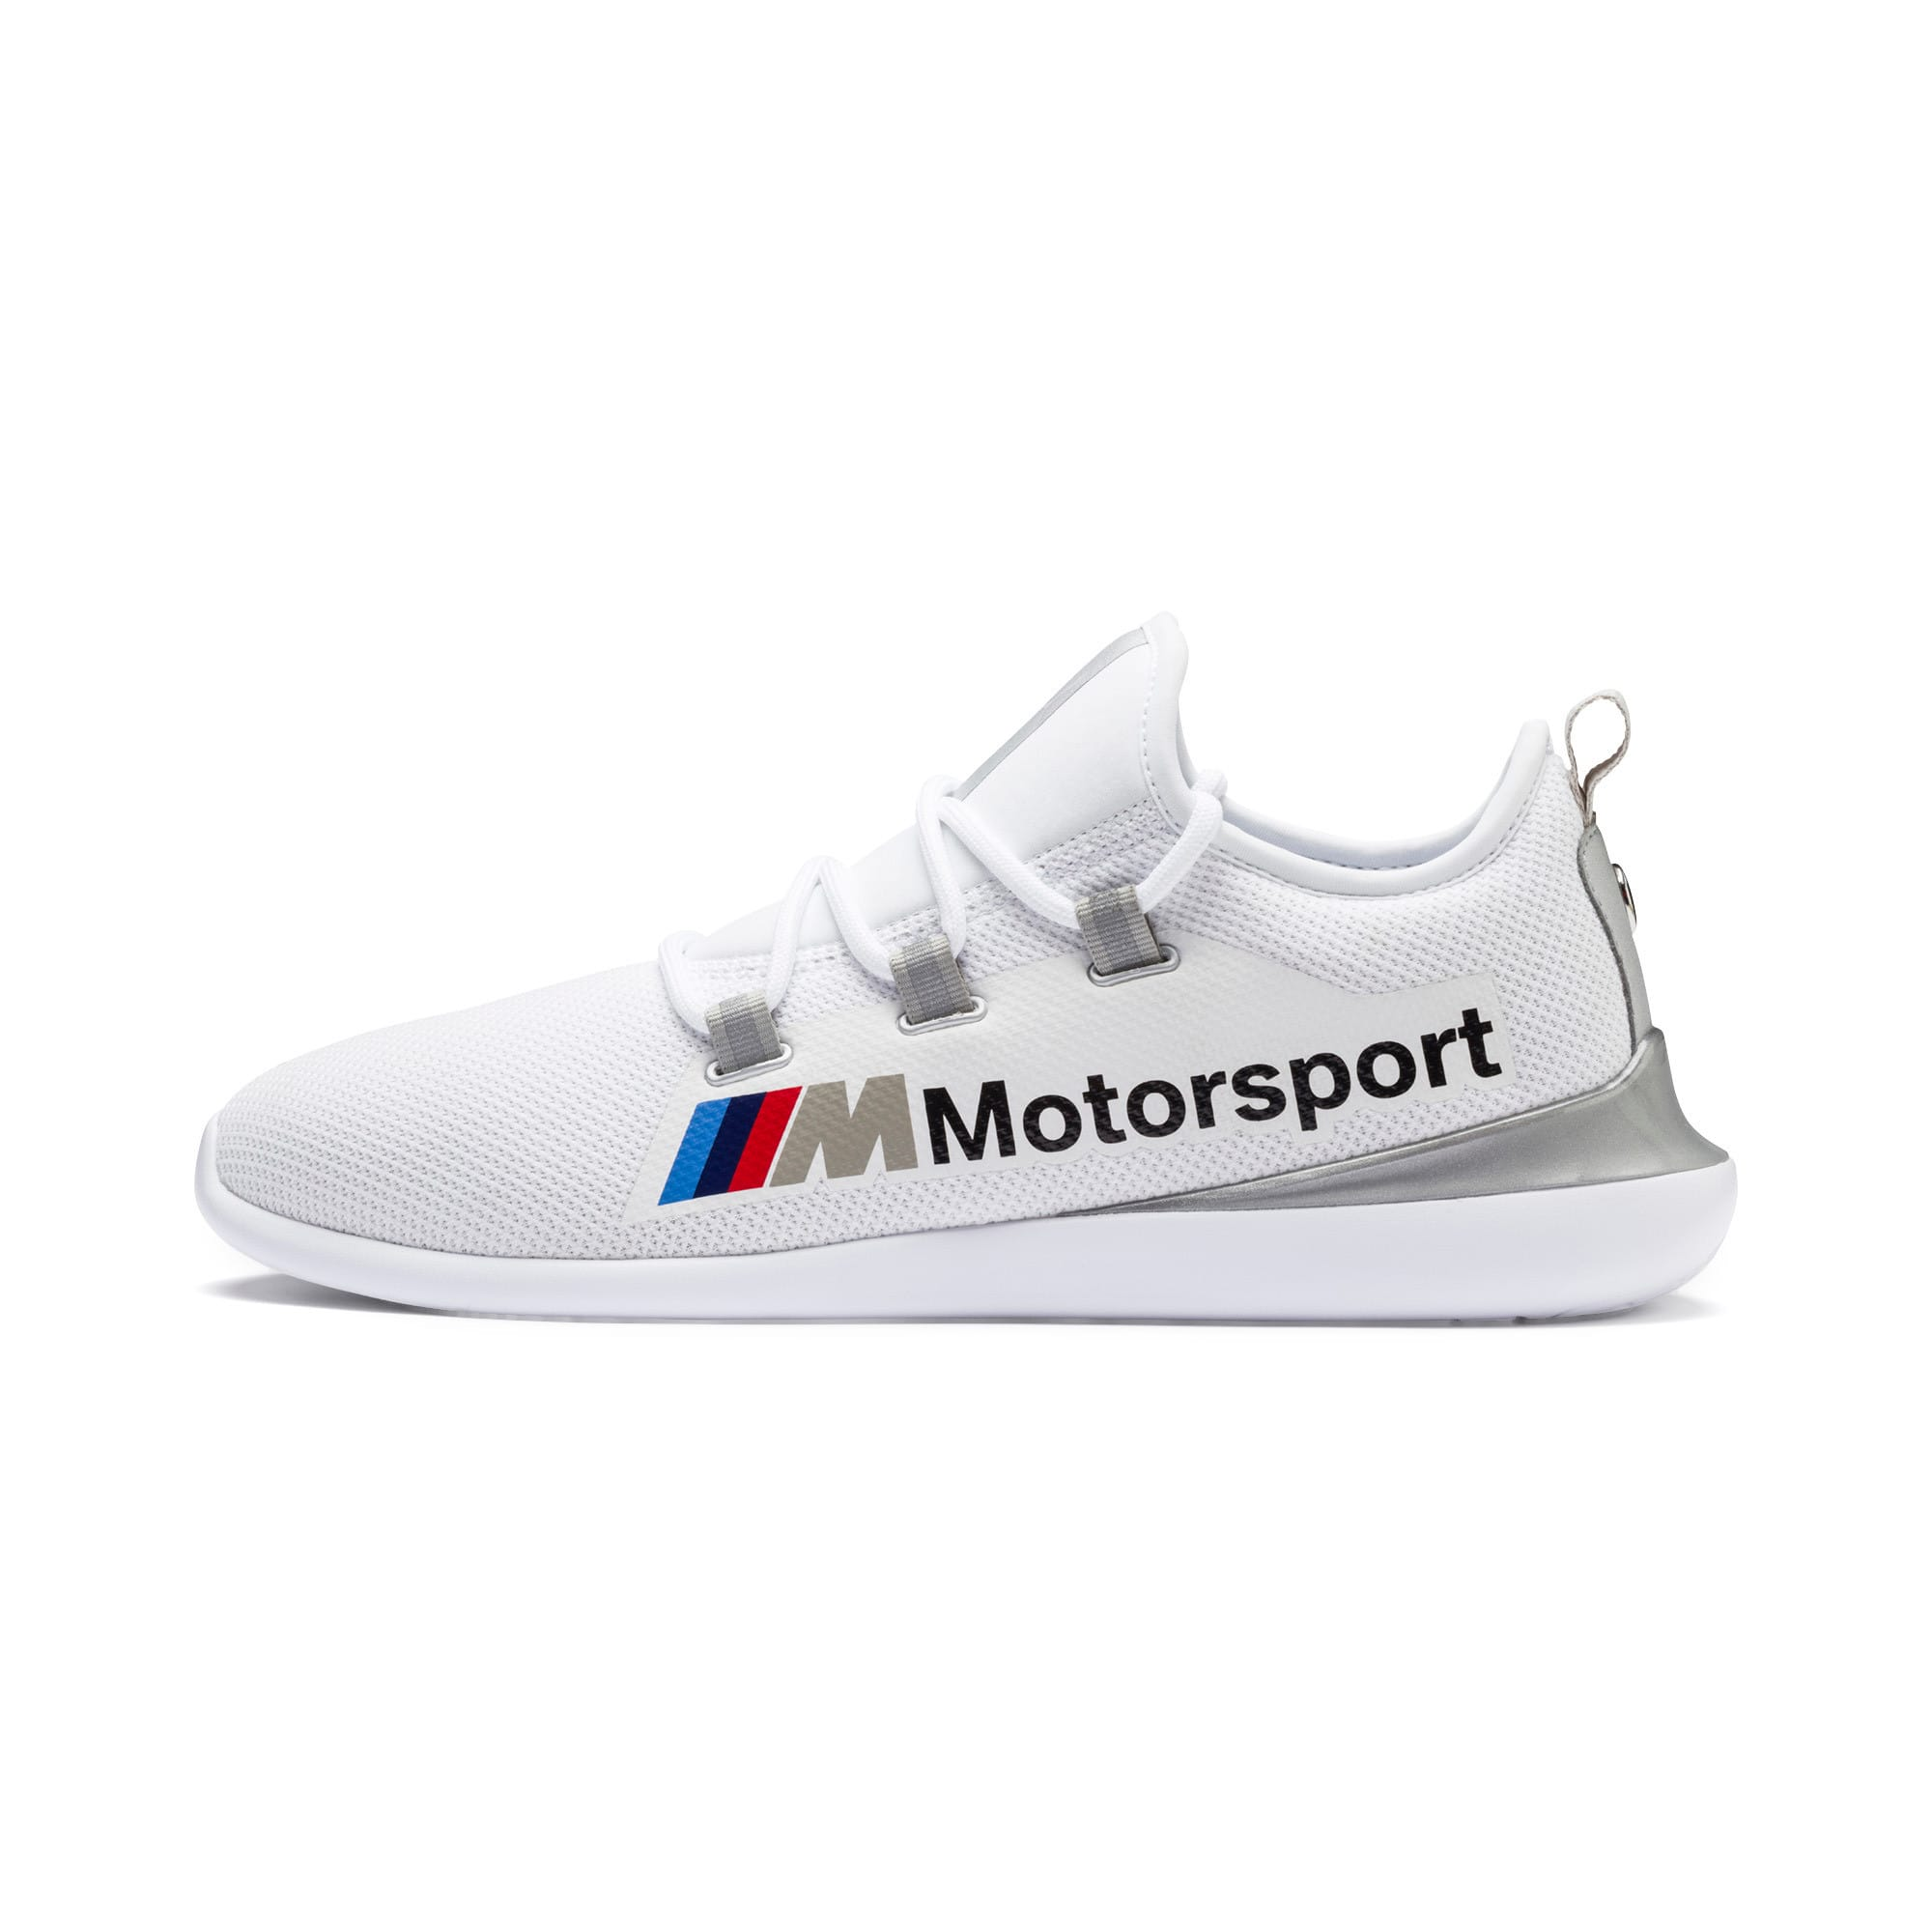 Thumbnail 1 of BMW M Motorsport Evo Cat Racer, Puma White-Puma Silver, medium